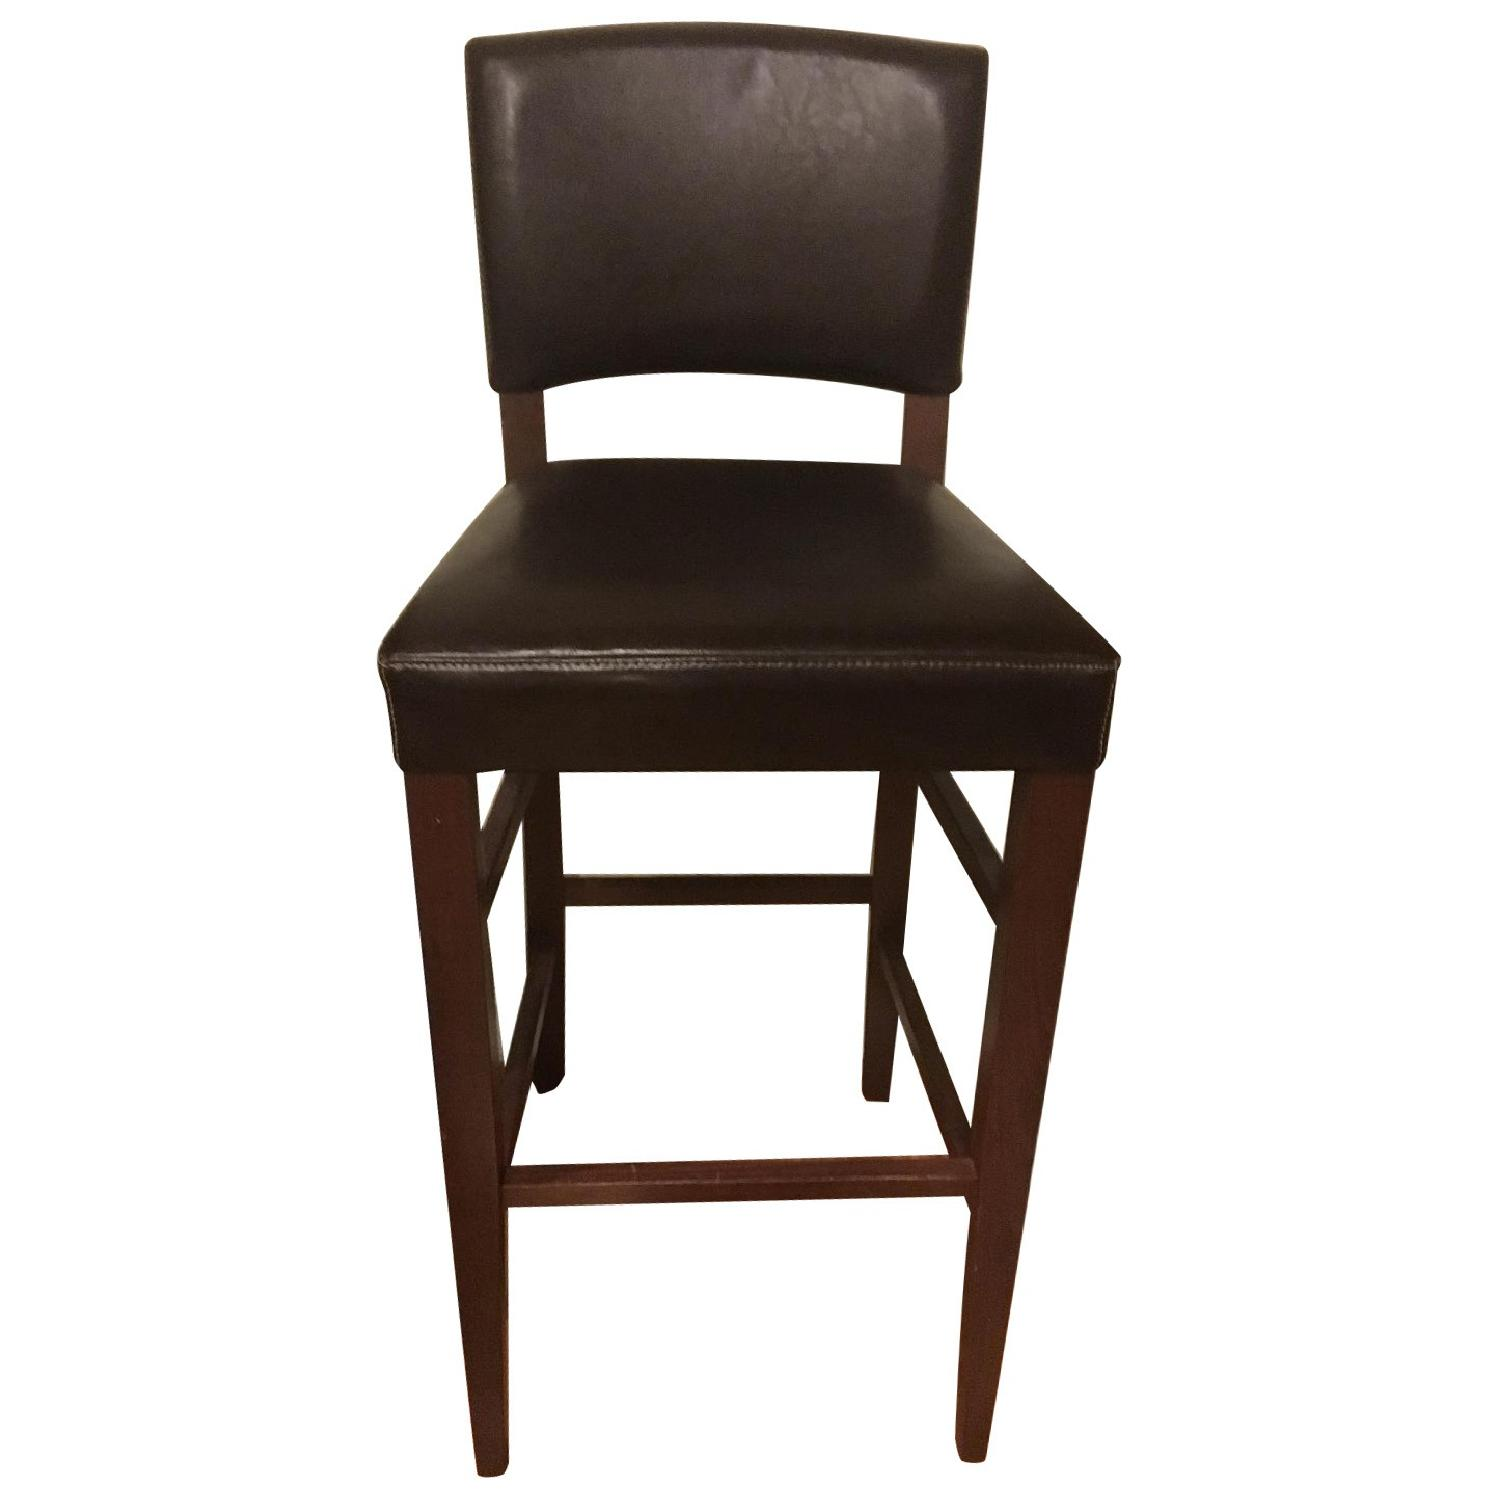 Pier 1 Brown Wood & Leather Bar Stools